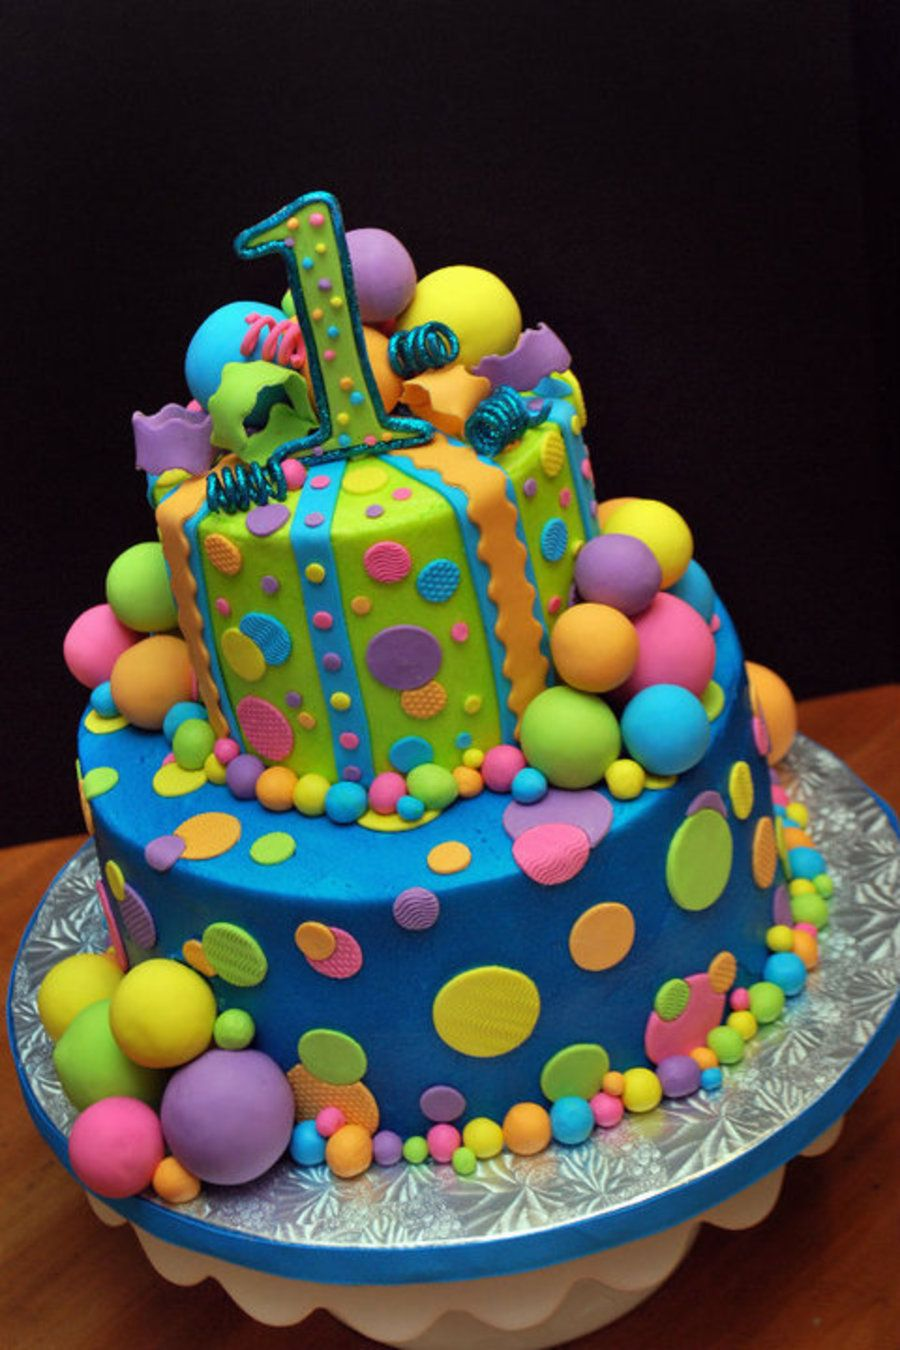 request for bright colors that matched some of this one Cakes